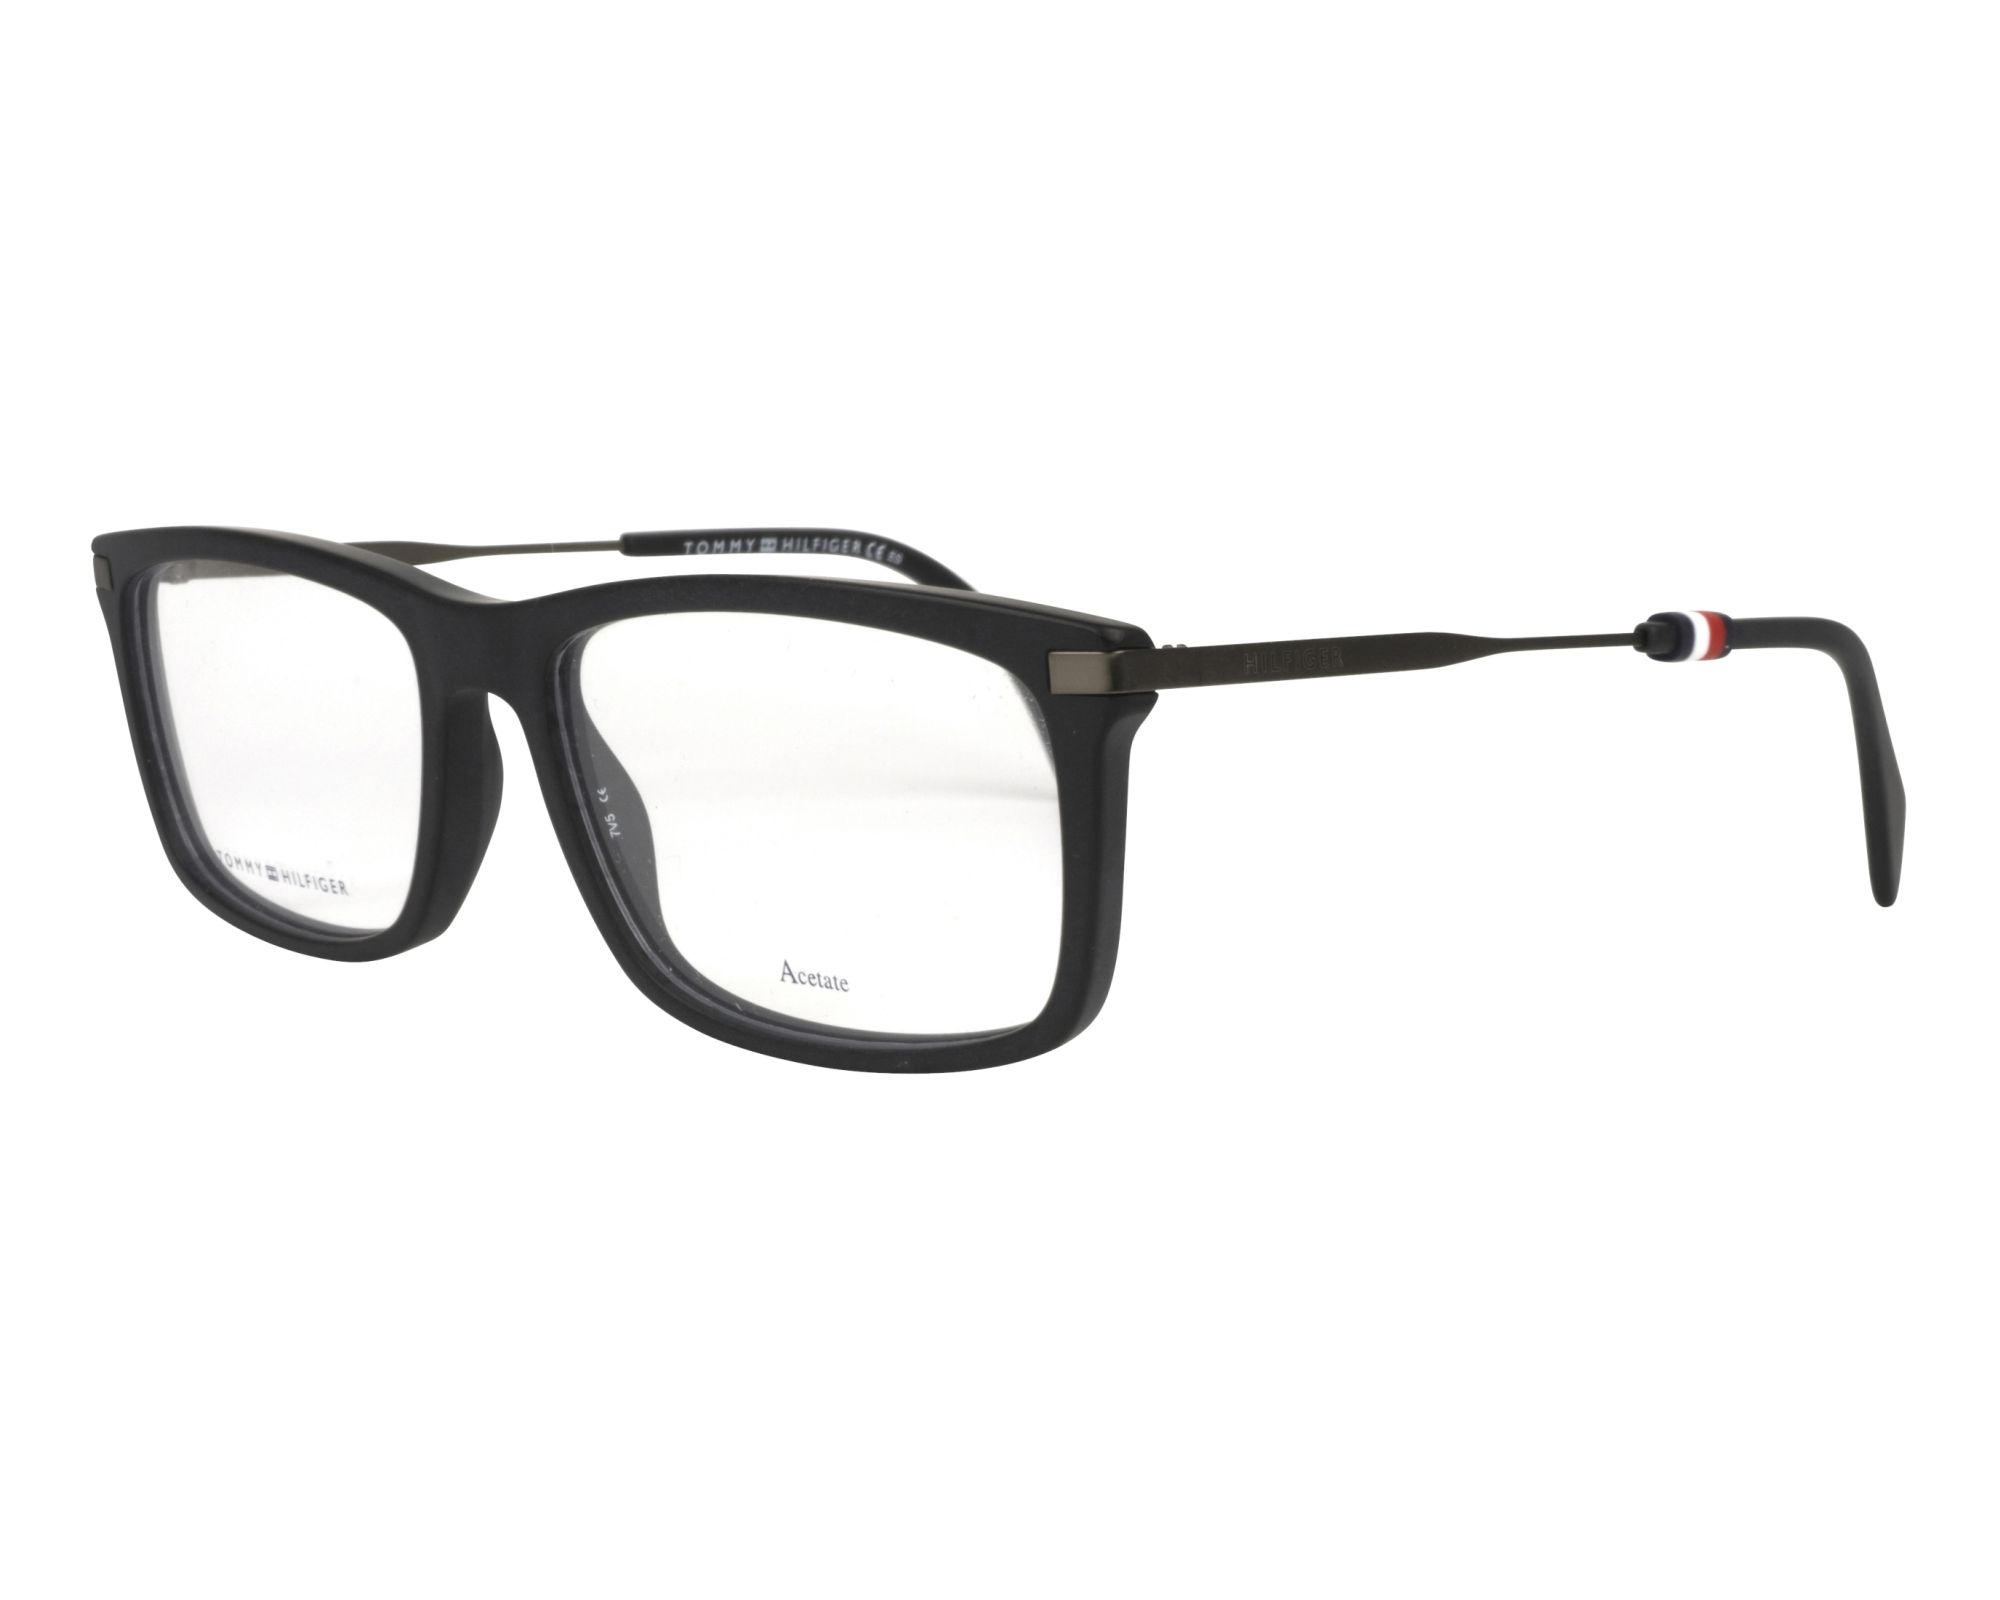 c0ccc602ac1 eyeglasses Tommy Hilfiger TH-1538 003 55-17 Black Gun profile view